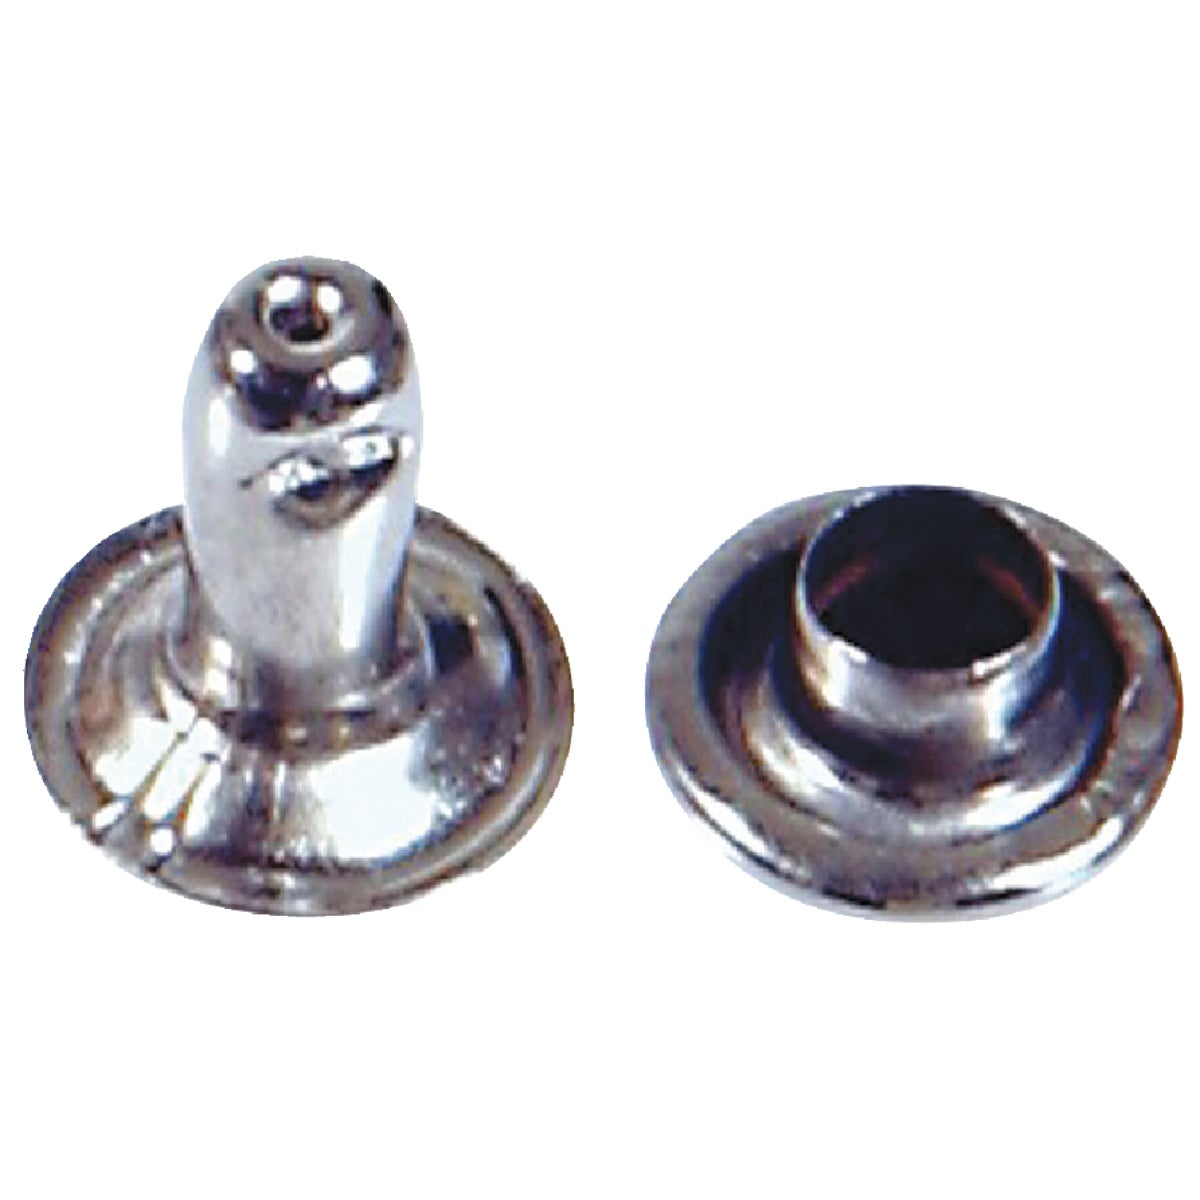 SML NICKEL PLATED RIVET - 8003 by Hillman Fastener